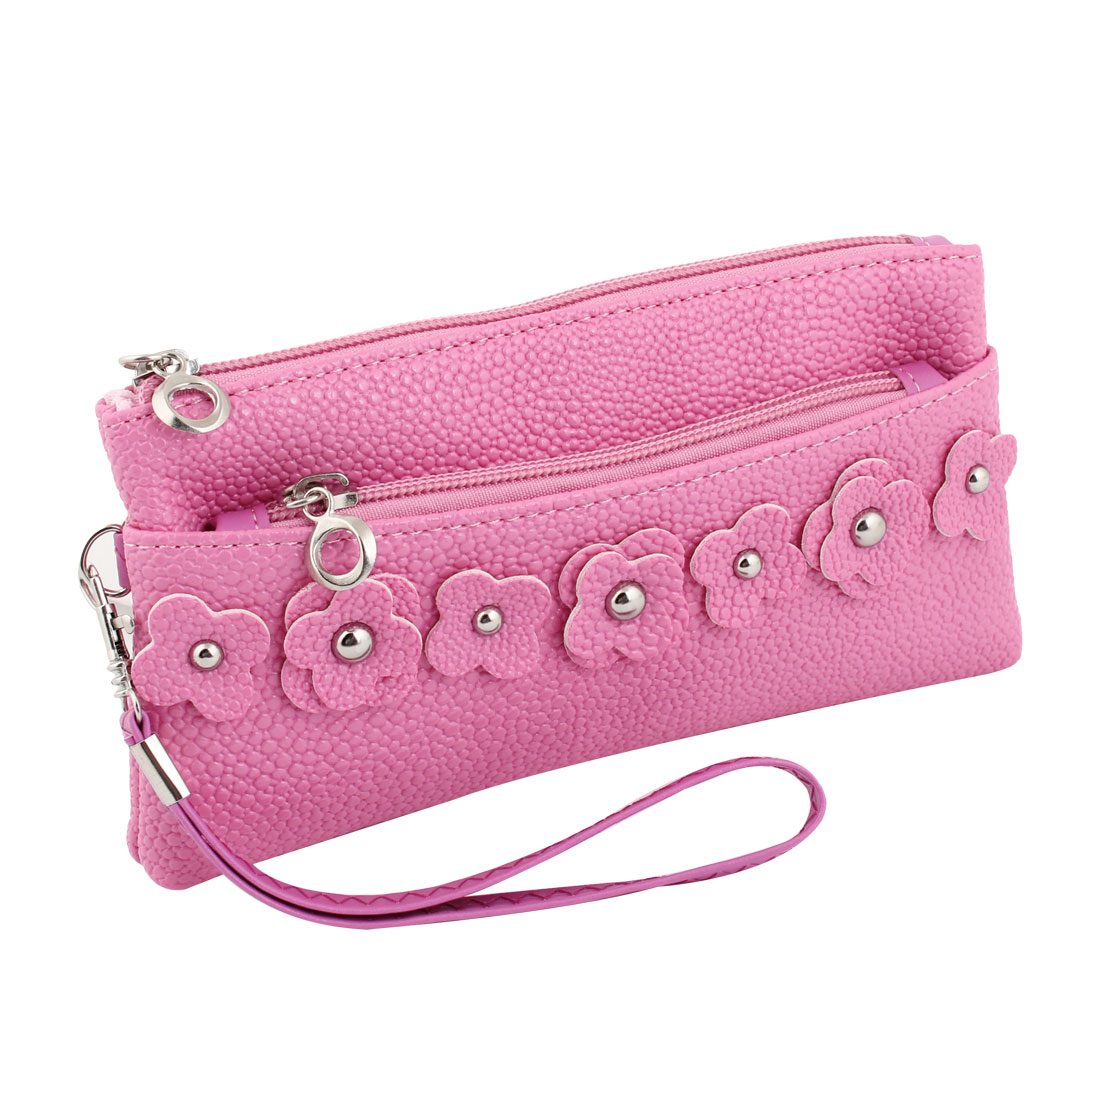 Flower Detail Zipper Closure Three Compartments Fuchsia Wallet Purse for Women